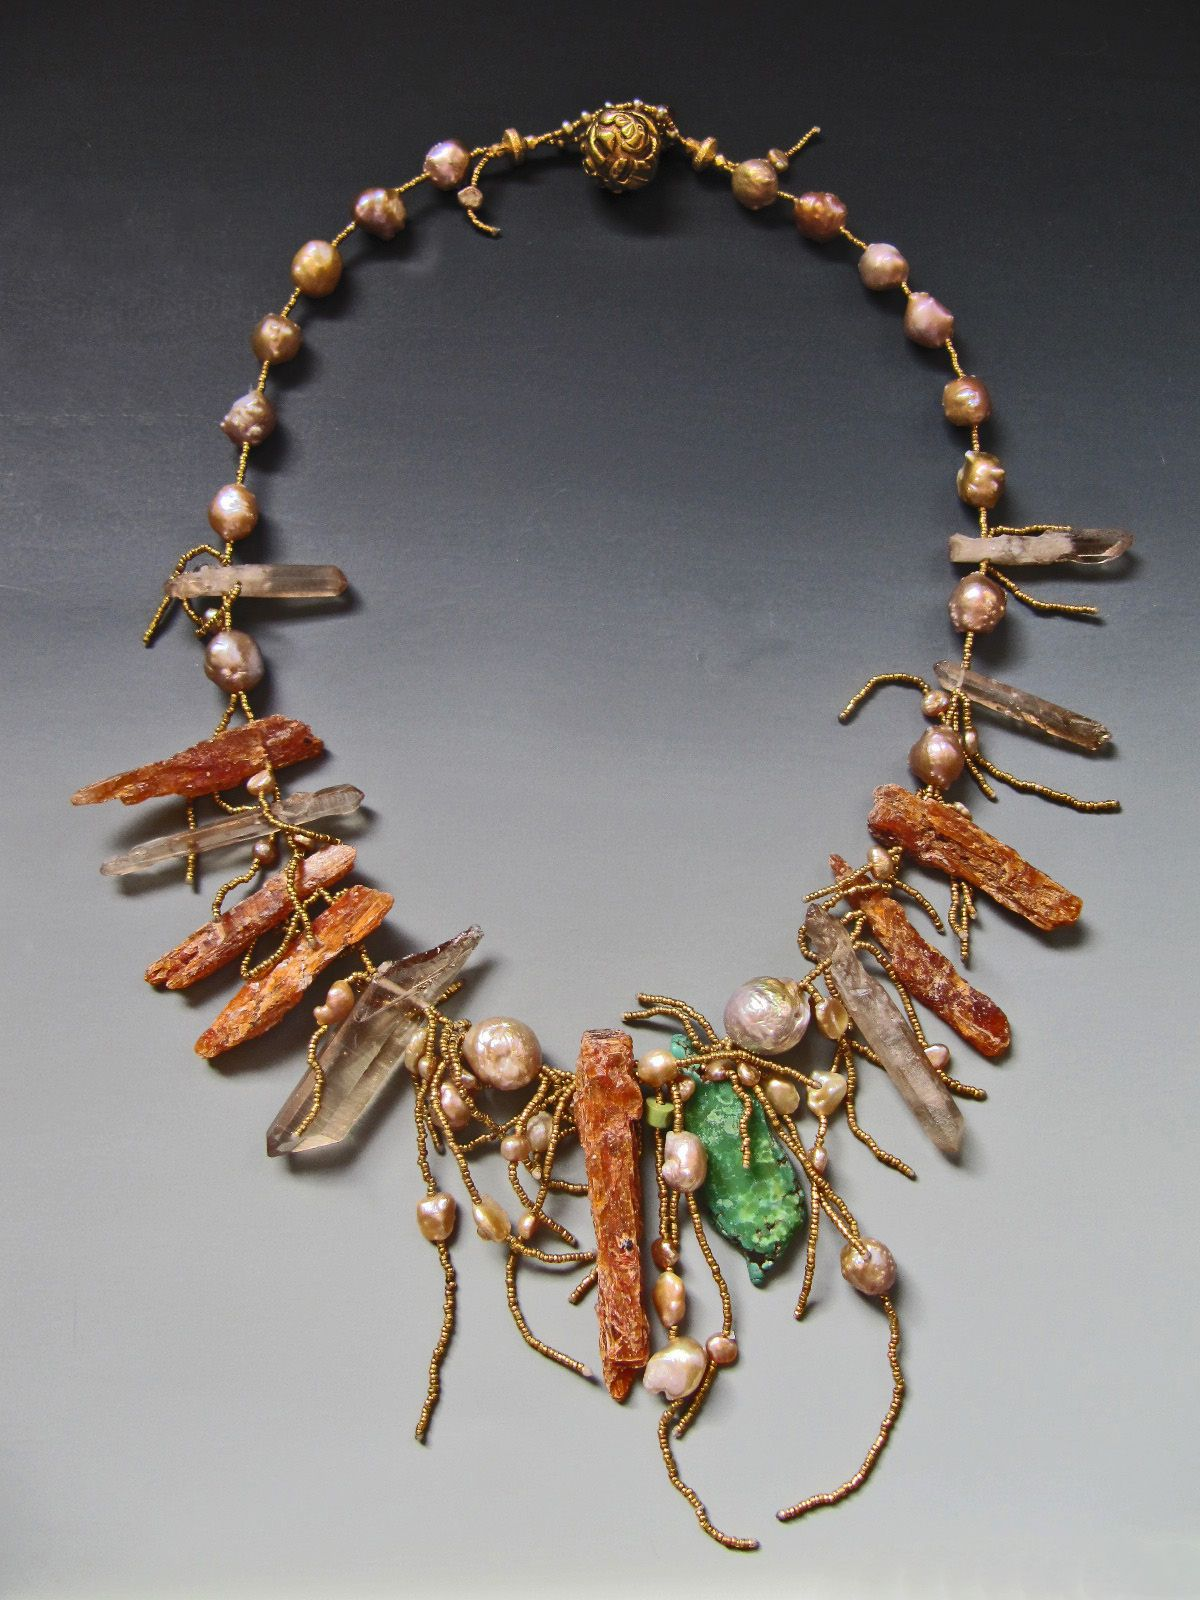 Lucia Antonelli - Orange Kyanite, quartz crystal, turquoise, Rosebud fresh water pearls, antique French brass seed beads